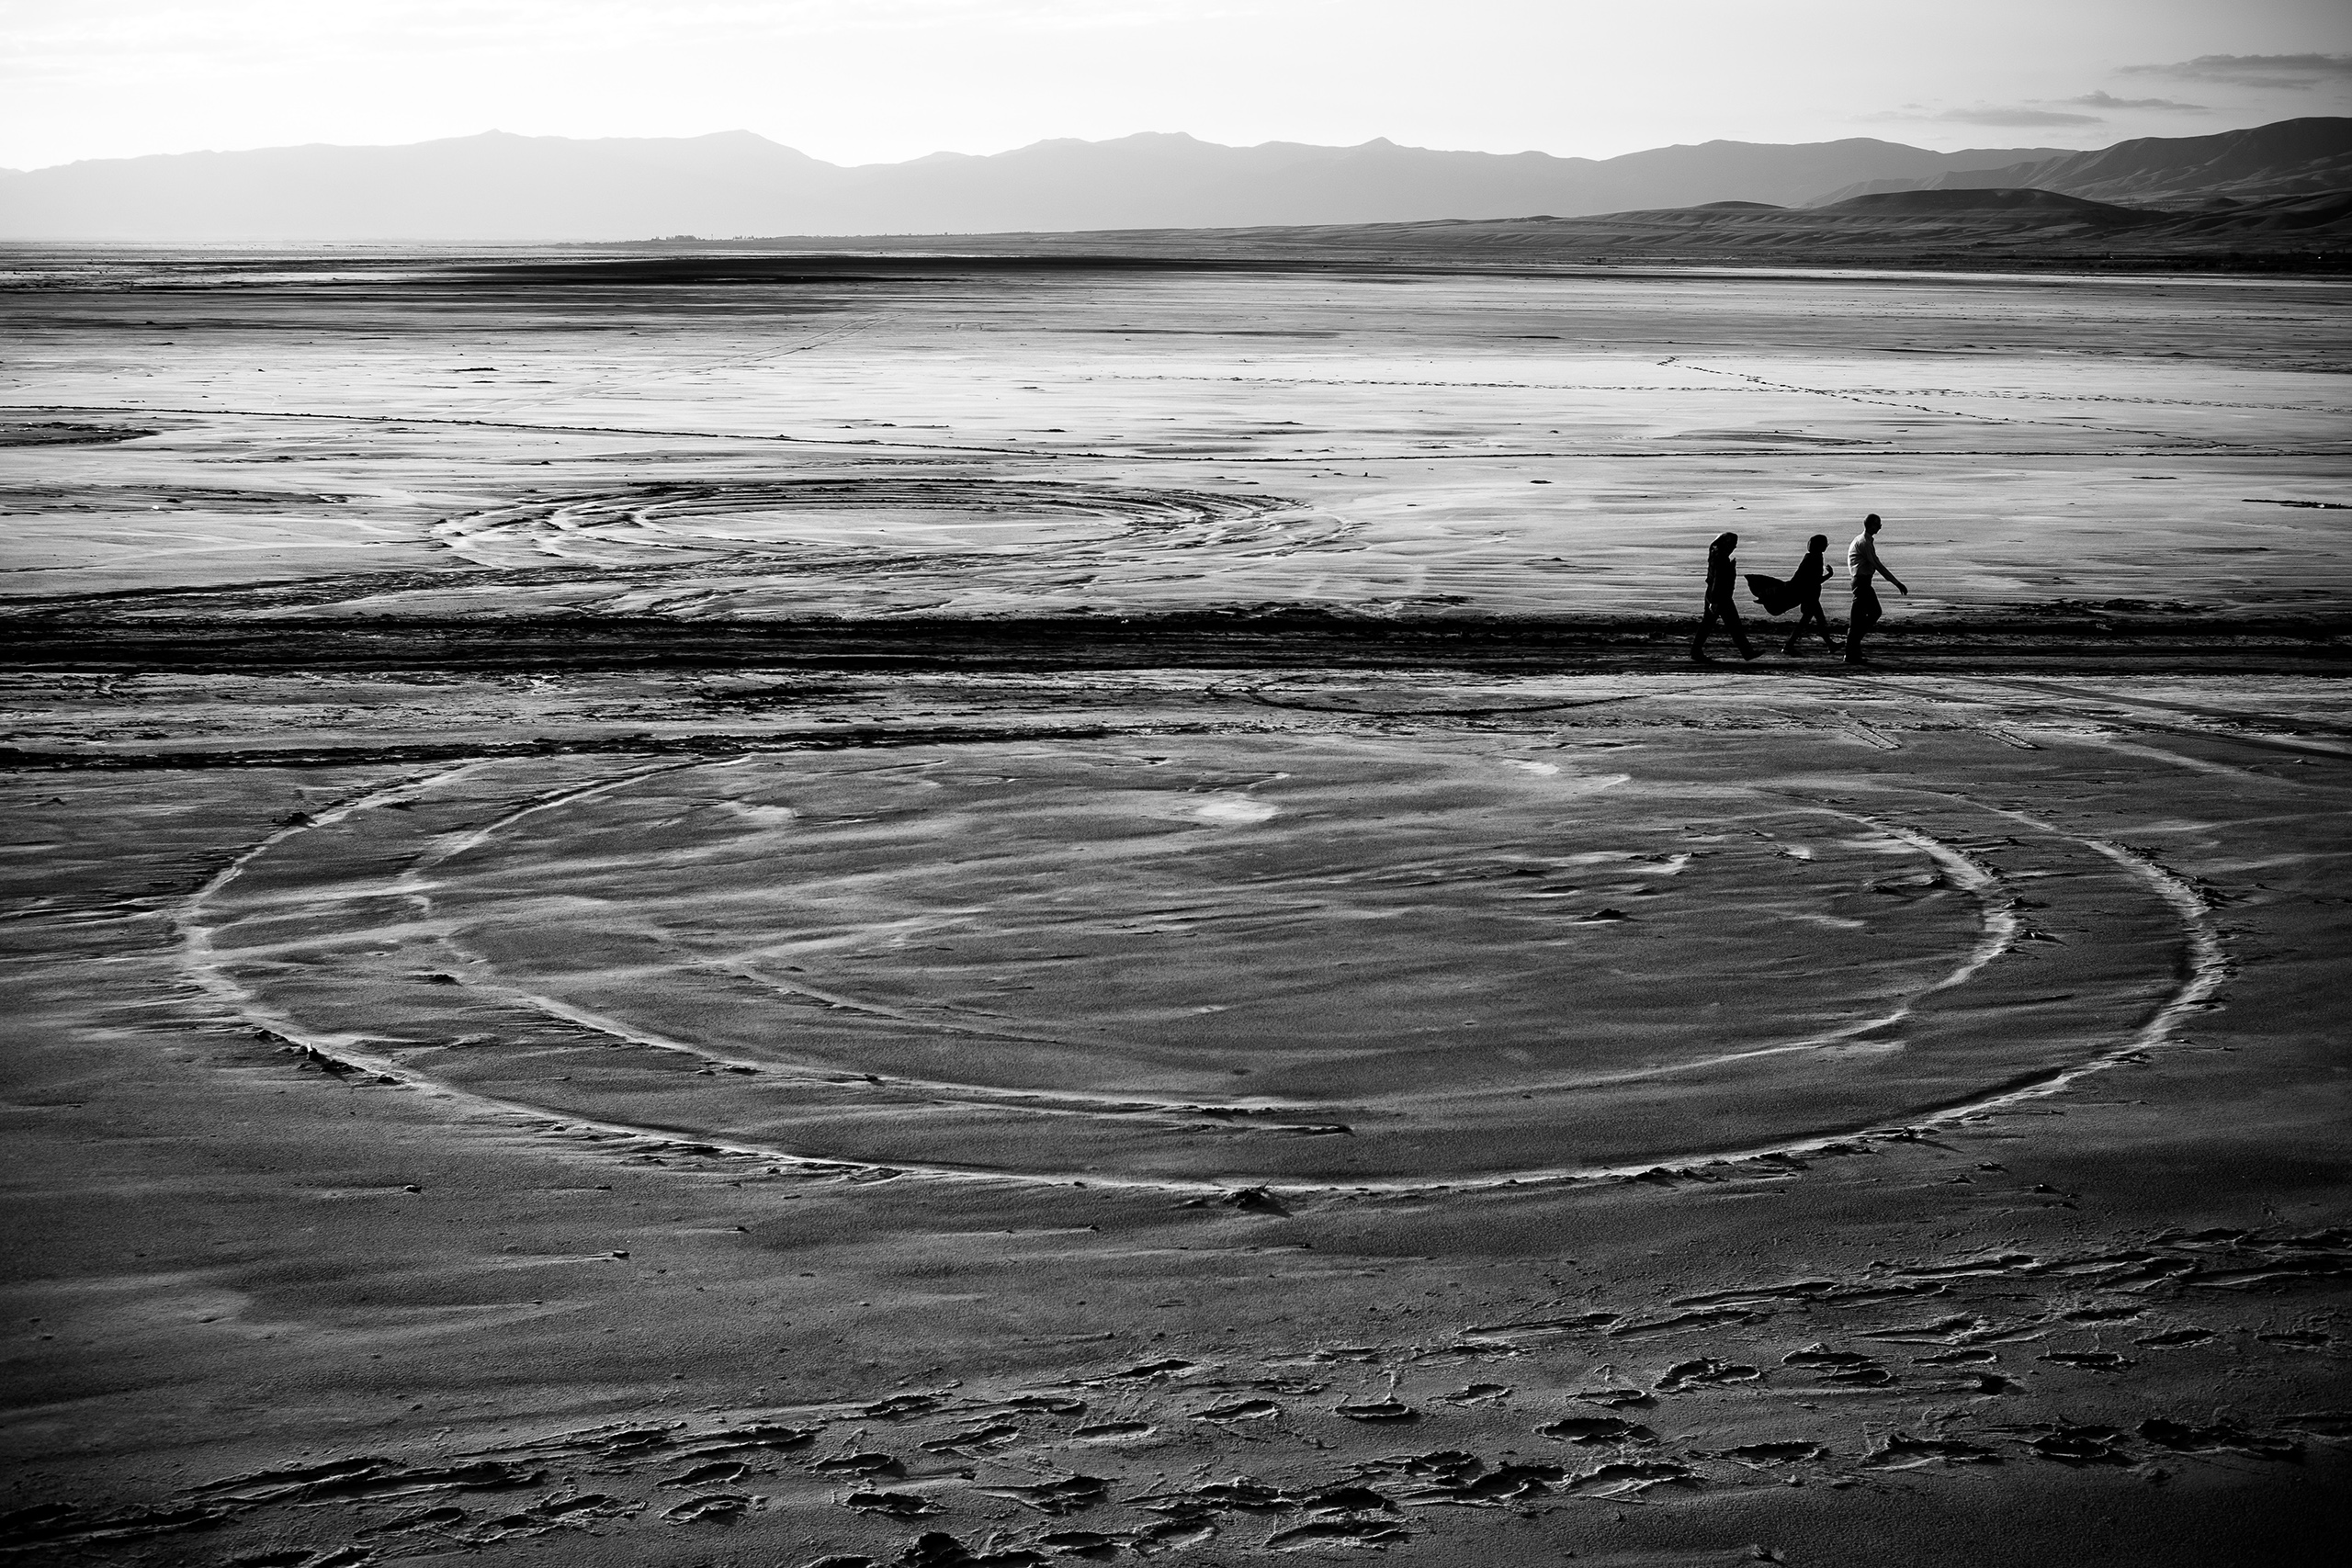 People walk on the dried Lake Urmia in northwestern Iran, near the Turkish border, which was  one of the largest saltwater lakes in the Middle East. The lake has been shrinking  over the last 20 years. This past summer algae and bacteria turned the water red, July 2016.